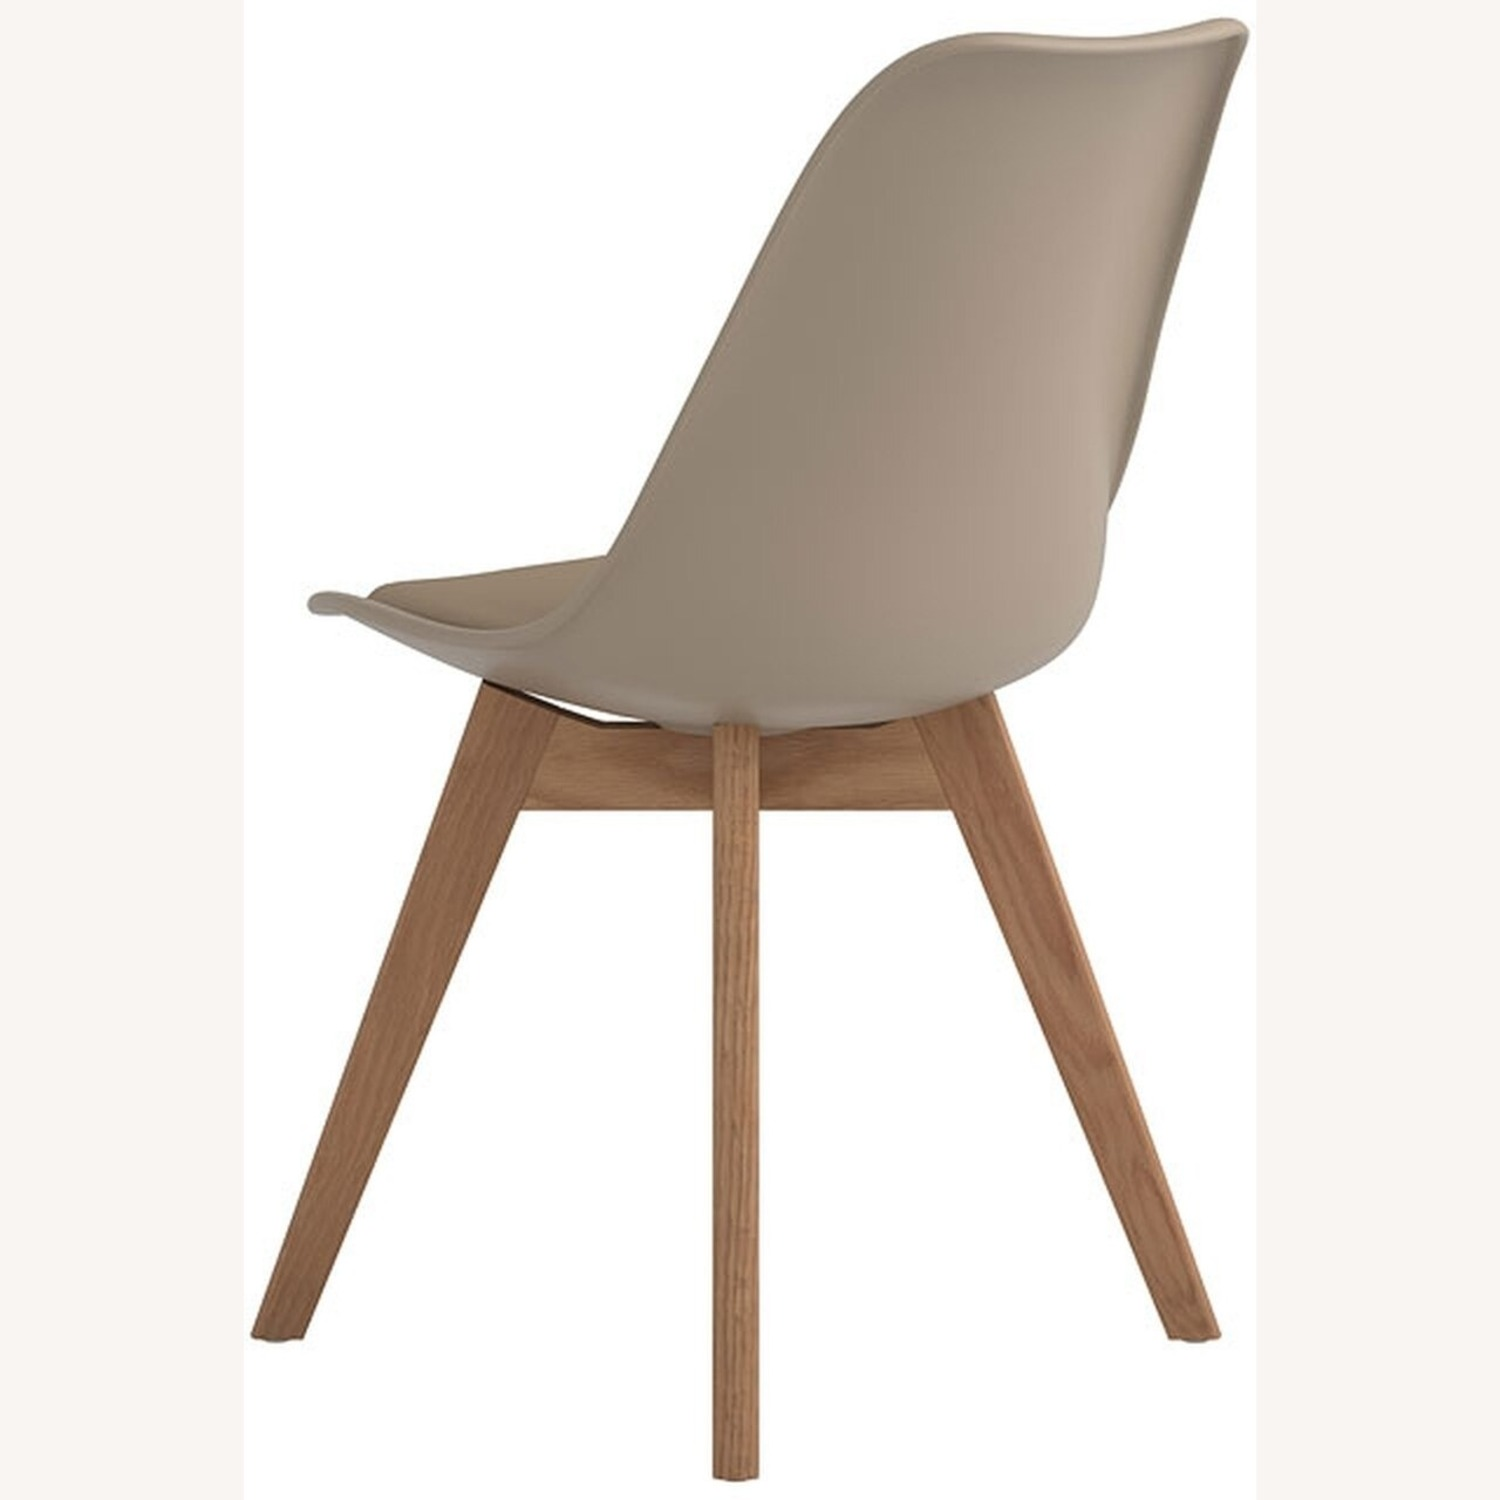 Modern Side Chair In Tan Leatherette - image-3